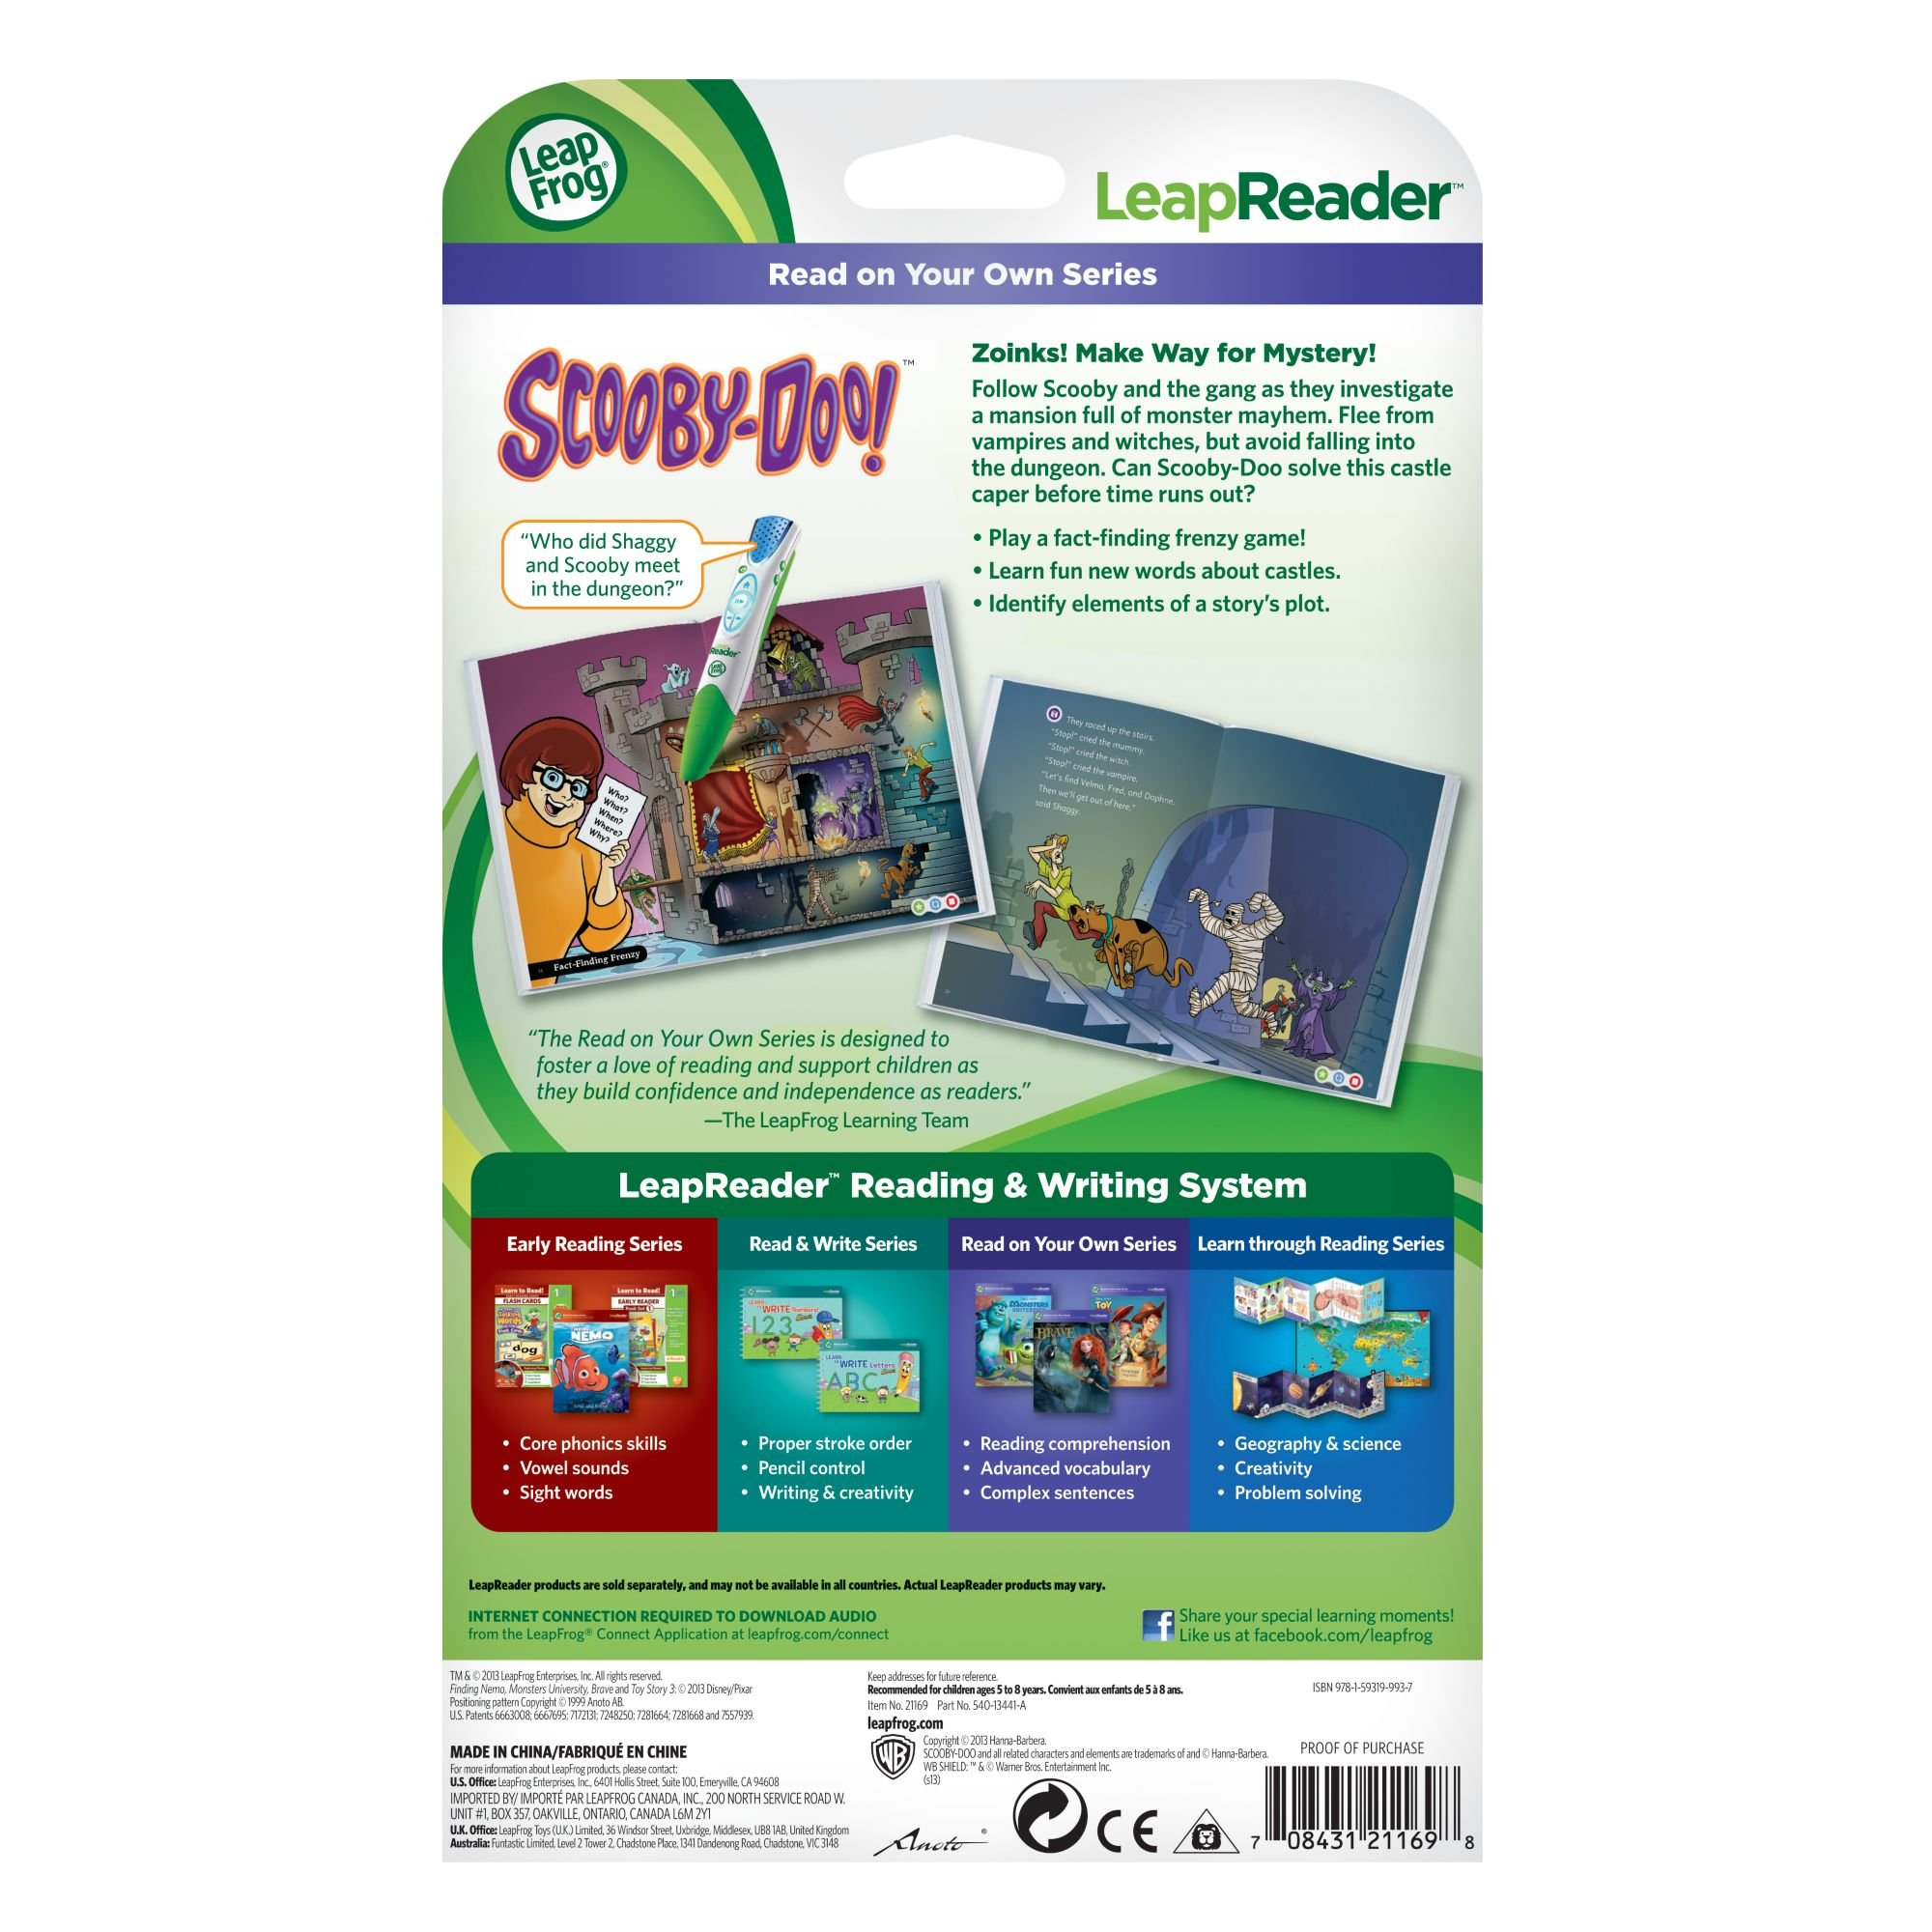 LeapFrog LeapReader Book: Scooby-Doo! Shiny Spooky Knights (works with Tag) by LeapFrog (Image #5)